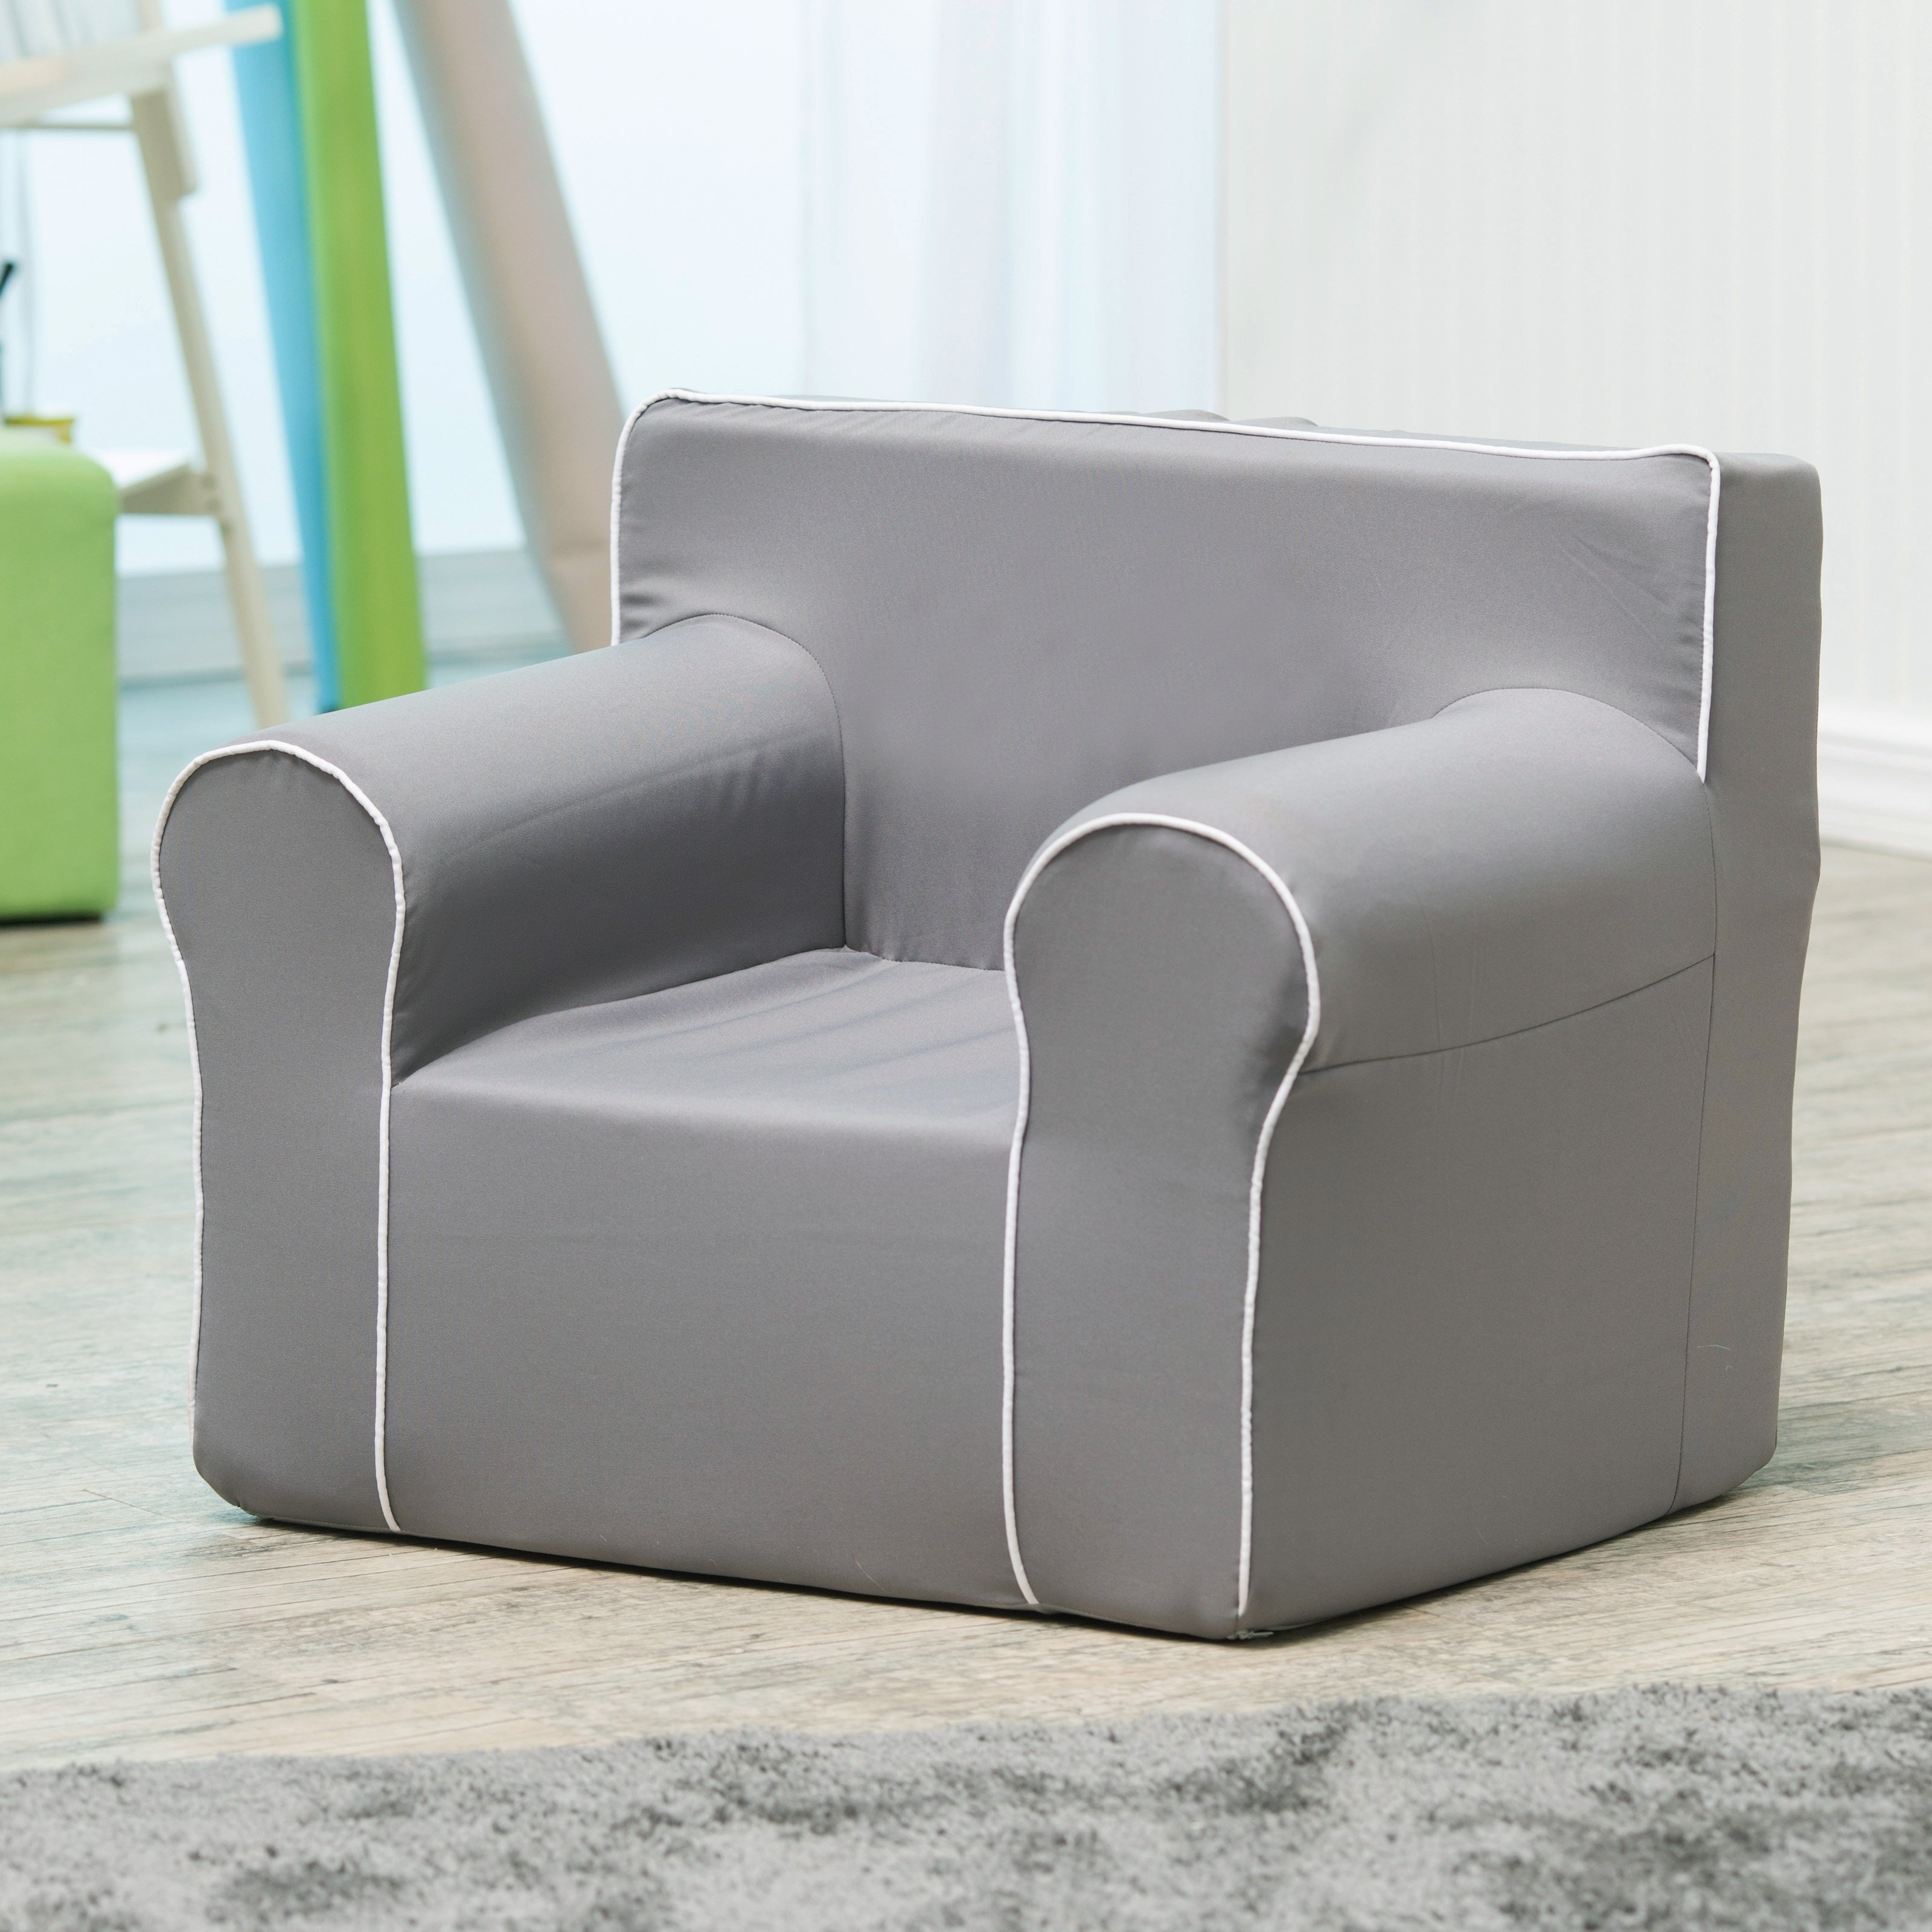 Hayneedle In Personalized Kids Chairs And Sofas (View 5 of 15)